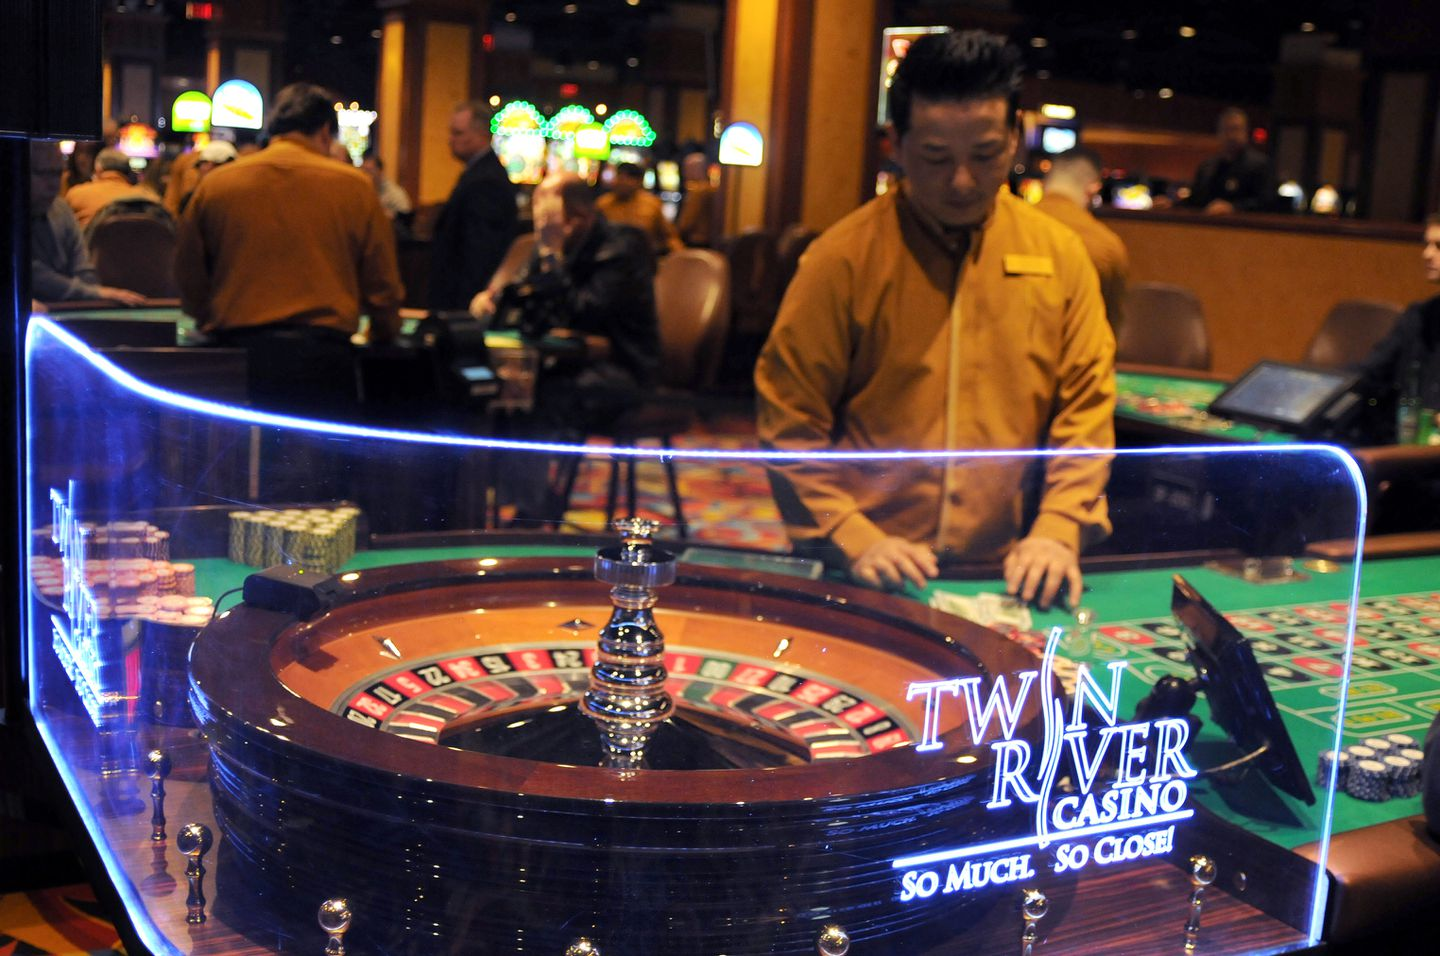 twin river casino job opportunities